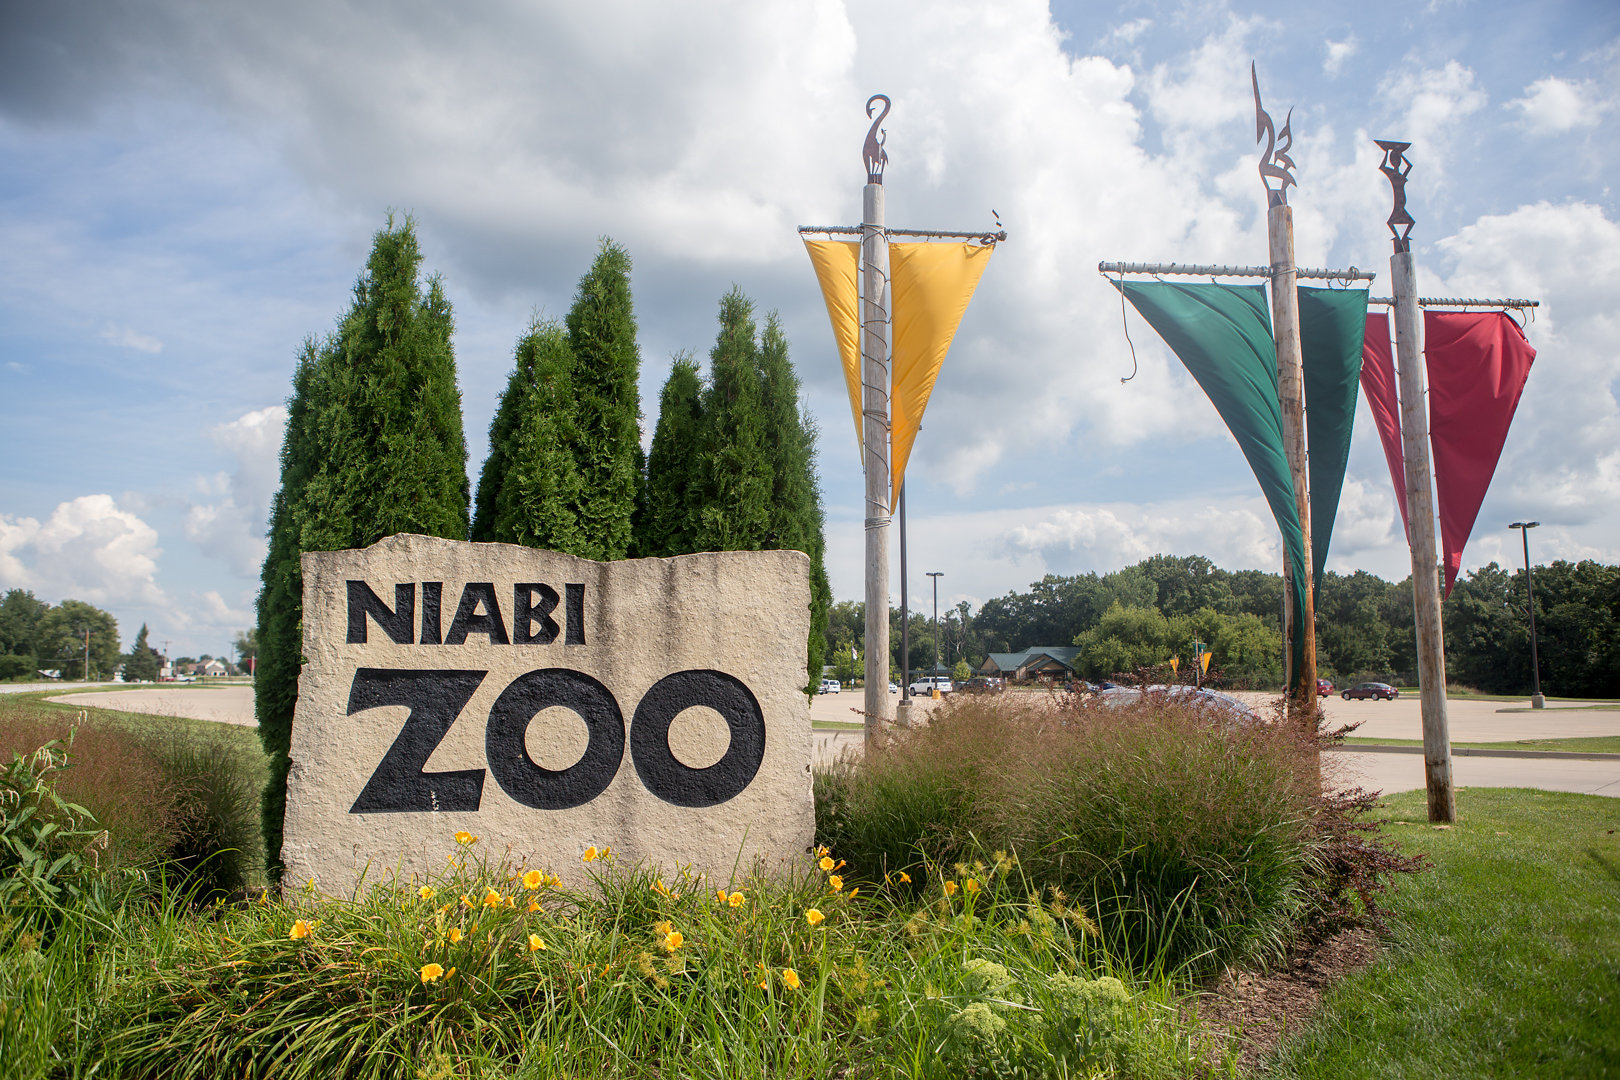 One of the closest zoos to the Geneseo area it recieves around 250,000 vistors each year, making it one of the biggest attractions in the area.